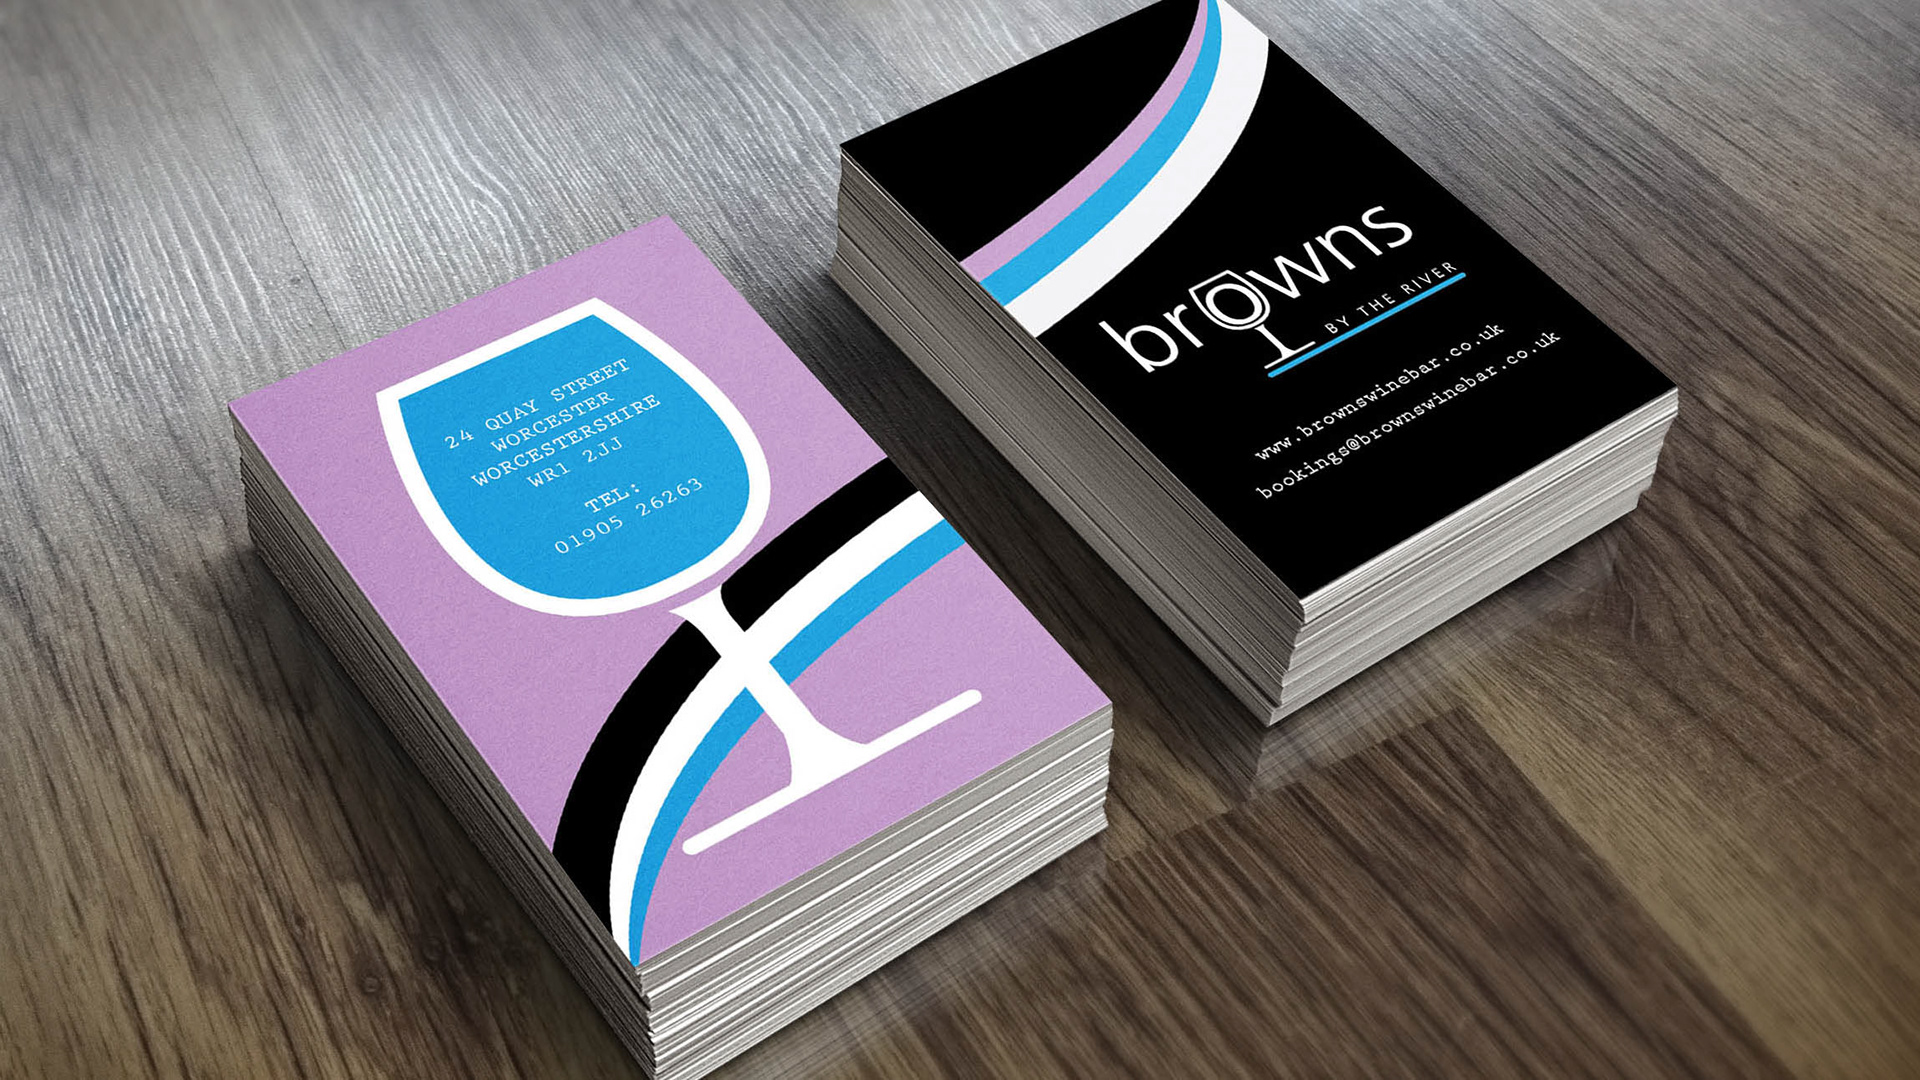 Lippett creative graphic design studio stationery business cards for browns bar worcester reheart Choice Image